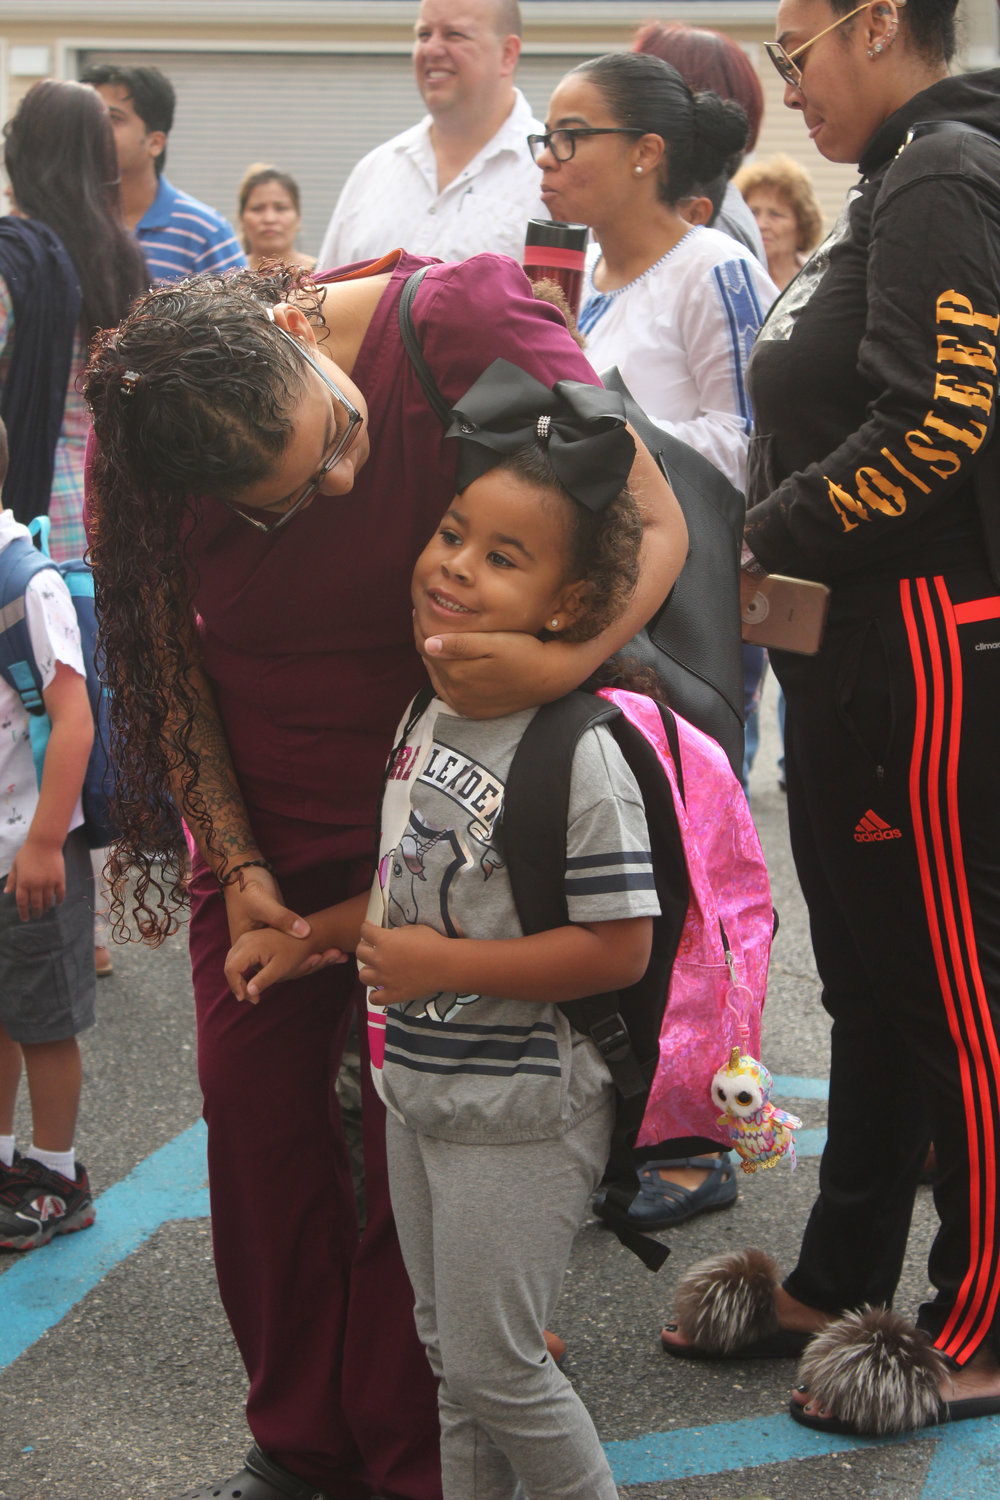 Felicia Reyes gave her daughter, Nyla, a hug and some words of encouragement.